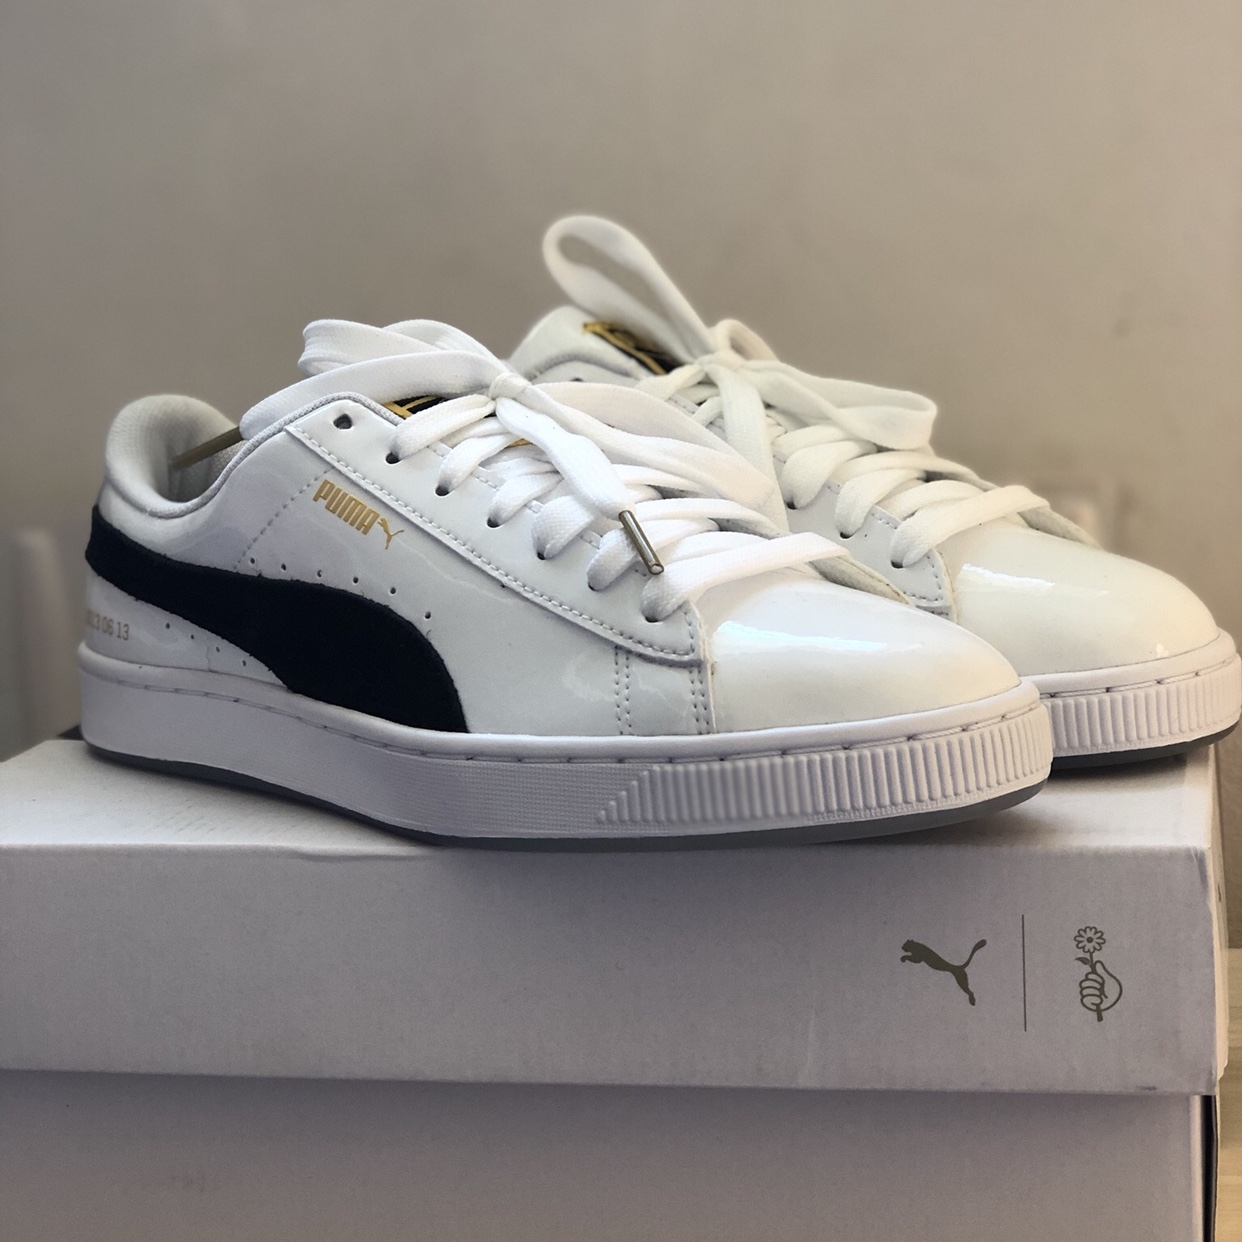 competitive price 1bb0a 09694 Puma x BTS basket sneakers! Selling my new BTS puma... - Depop